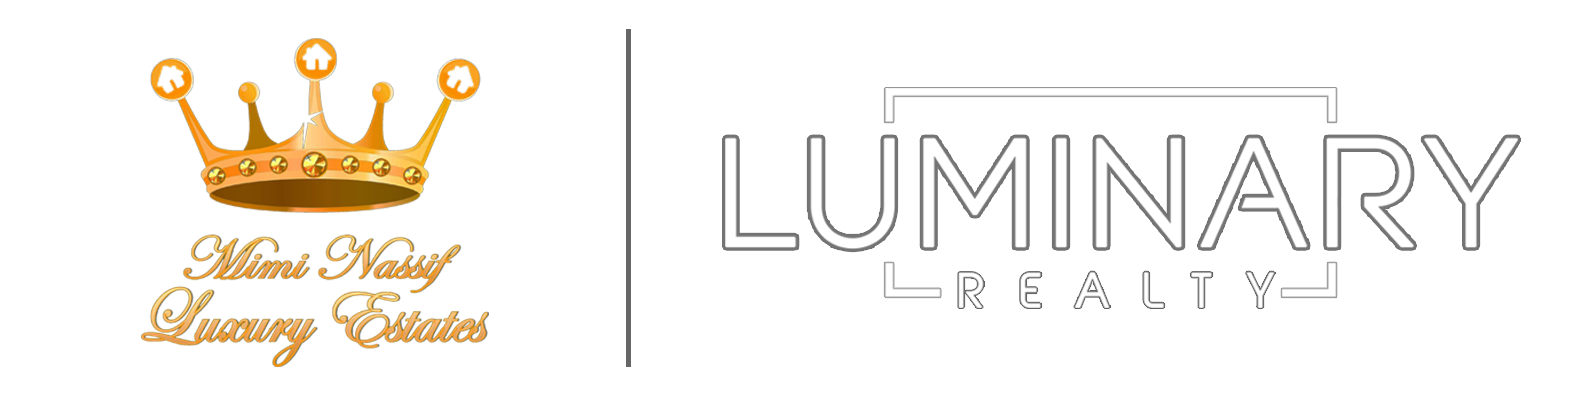 Luminary Realty